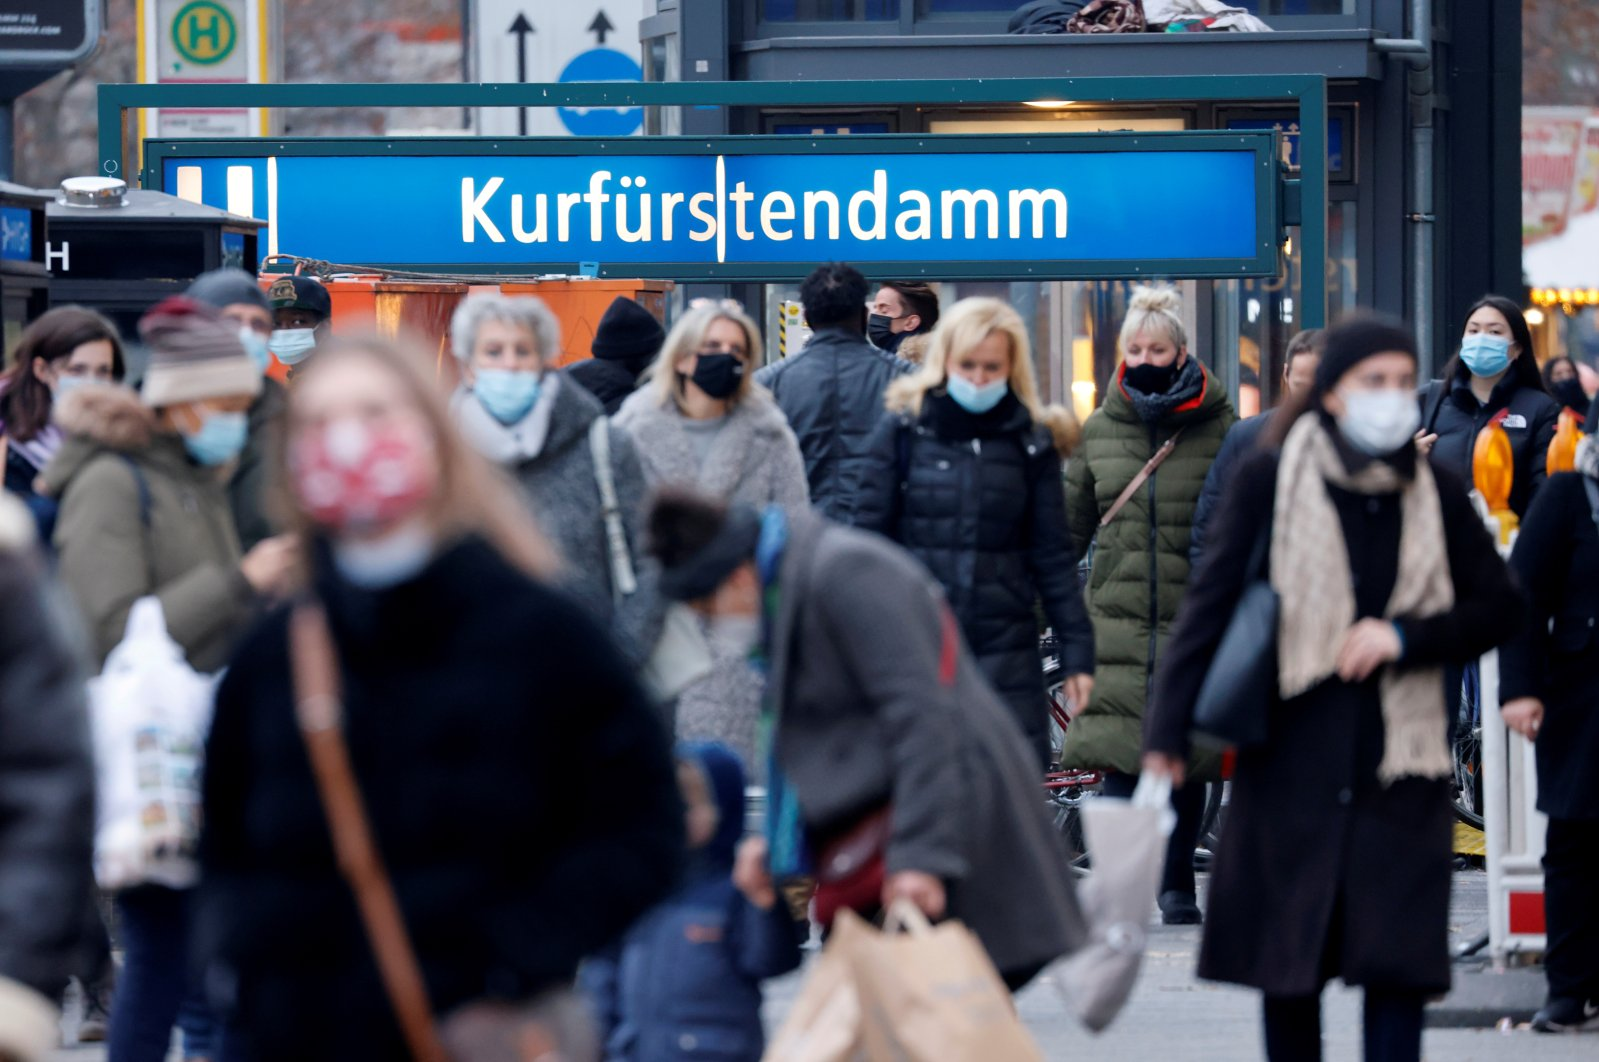 People with protective face masks walk on Kurfurstendamm shopping boulevard amid the COVID-19 outbreak in Berlin, Germany, Dec. 5, 2020. (Reuters Photo)